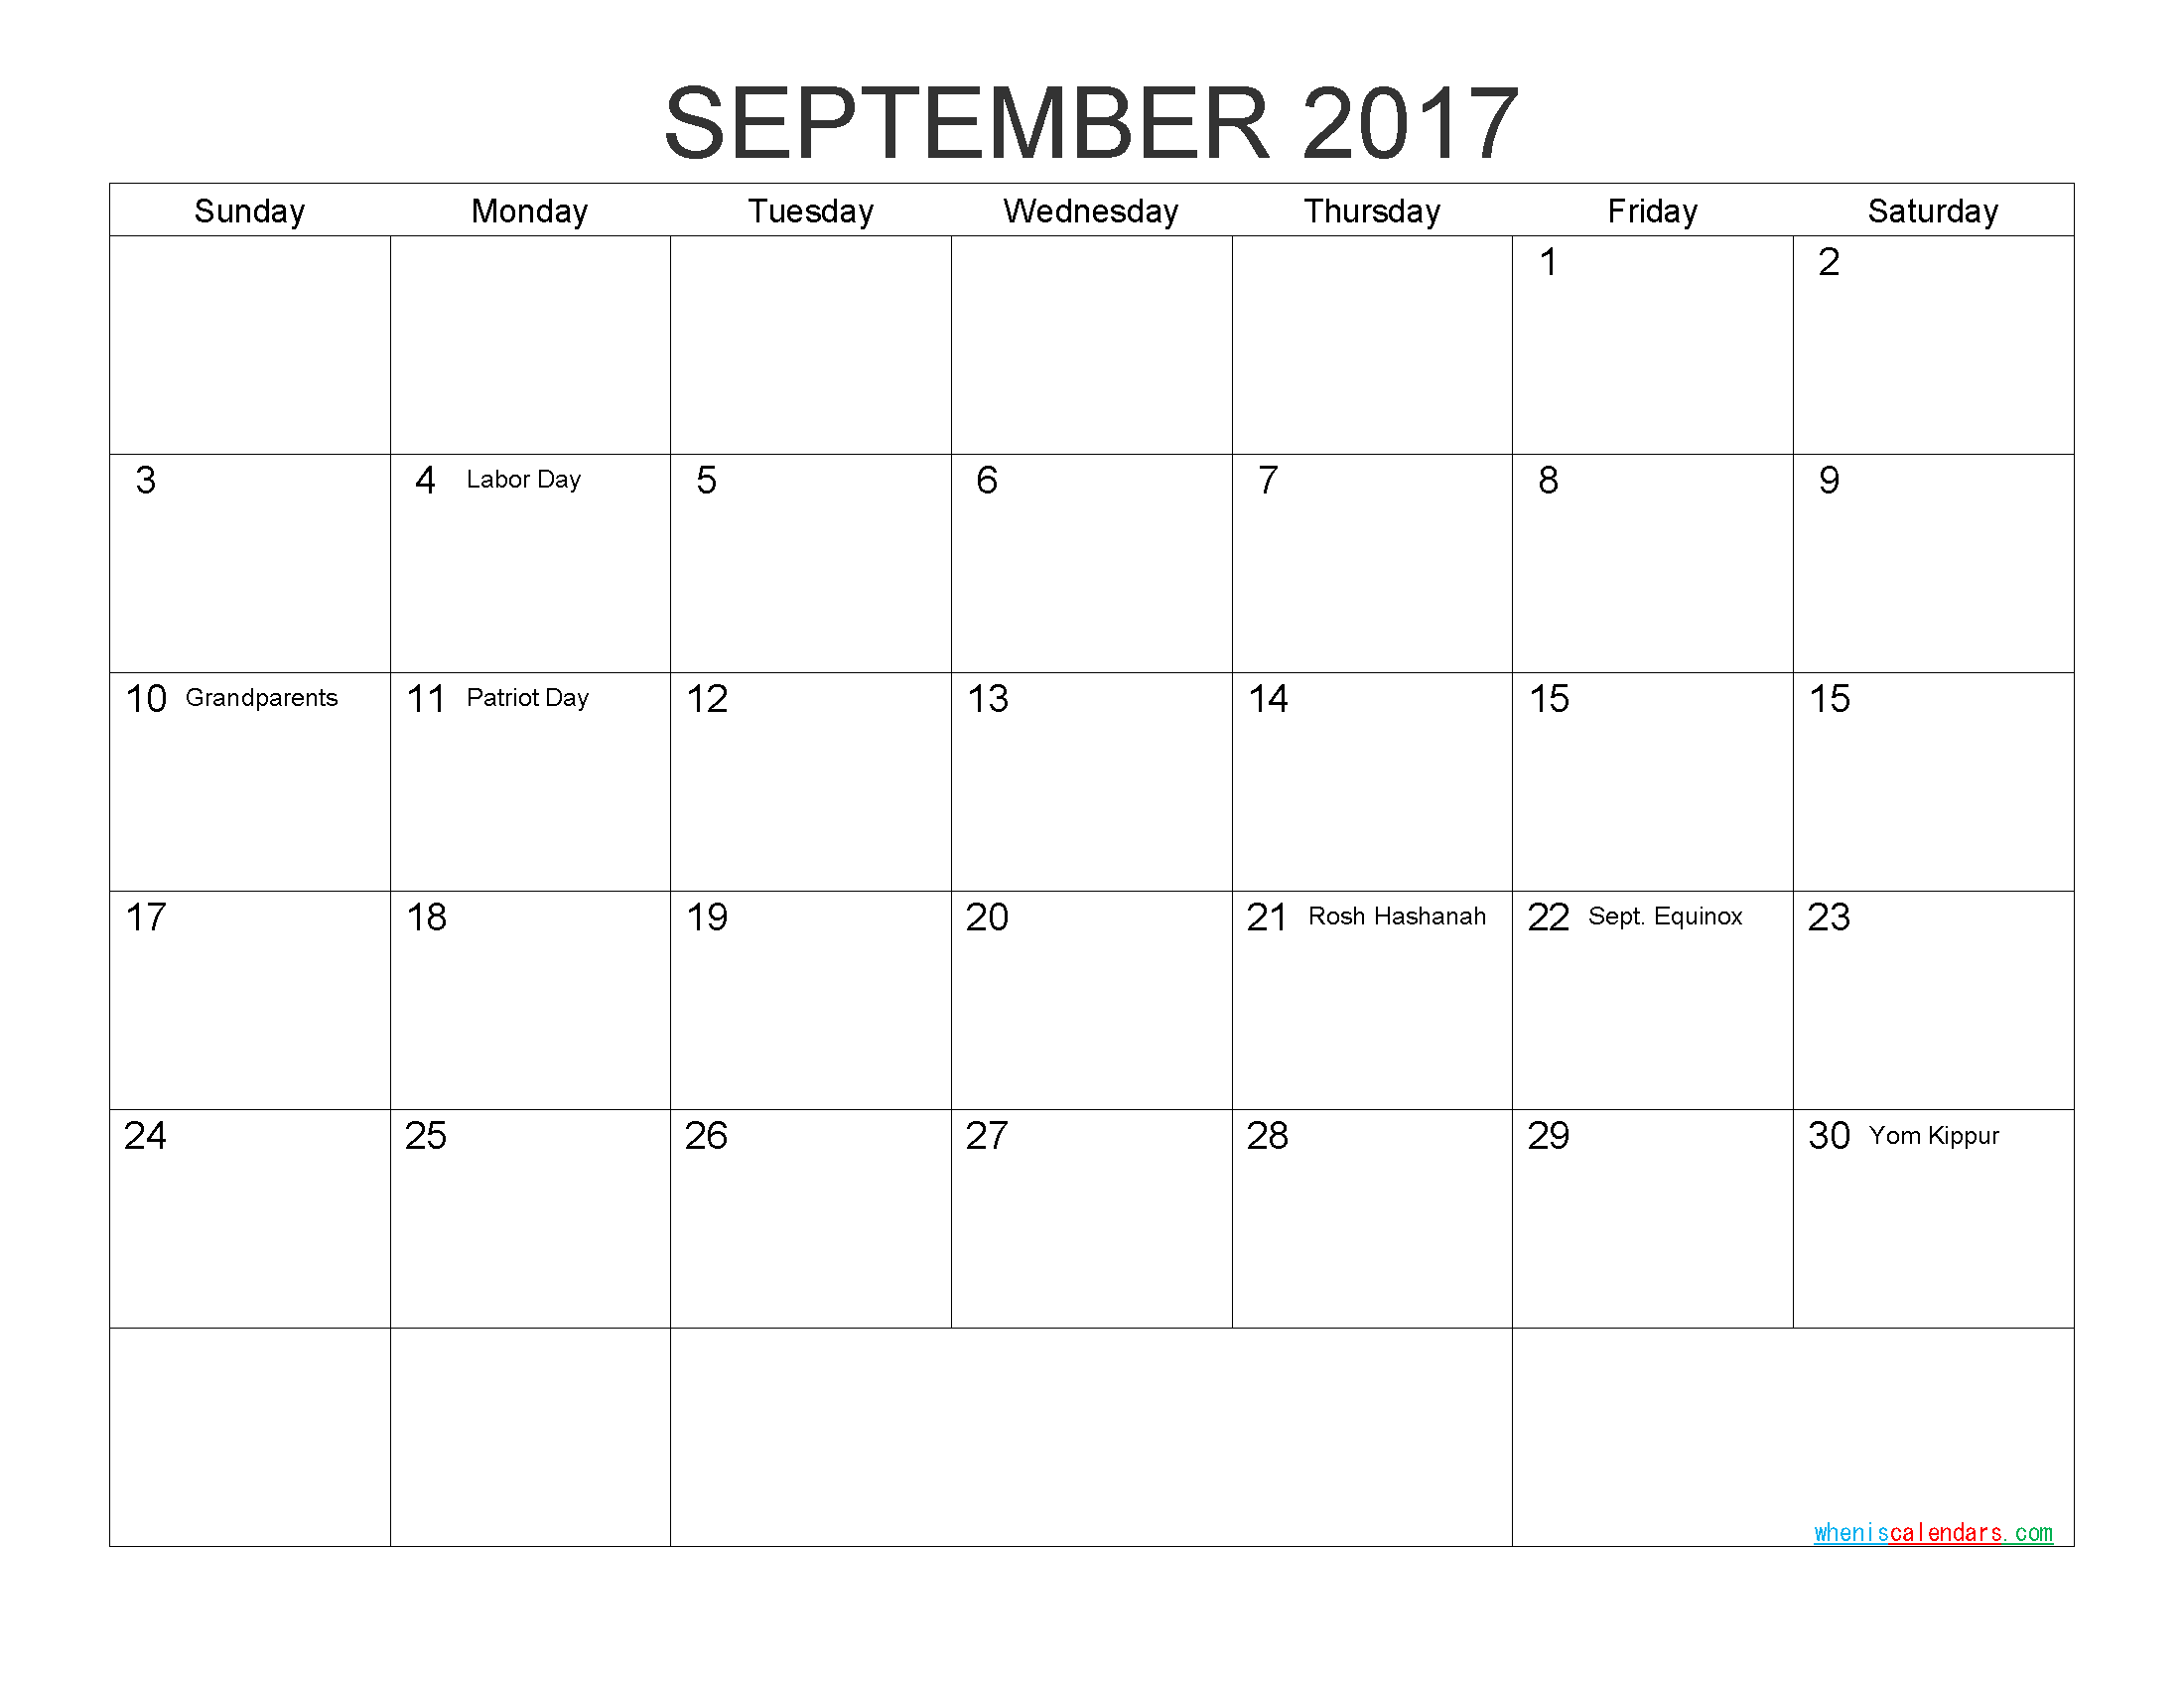 Download Free Calendar September 2017 Printable Calendar with Holidays as PDF and Image